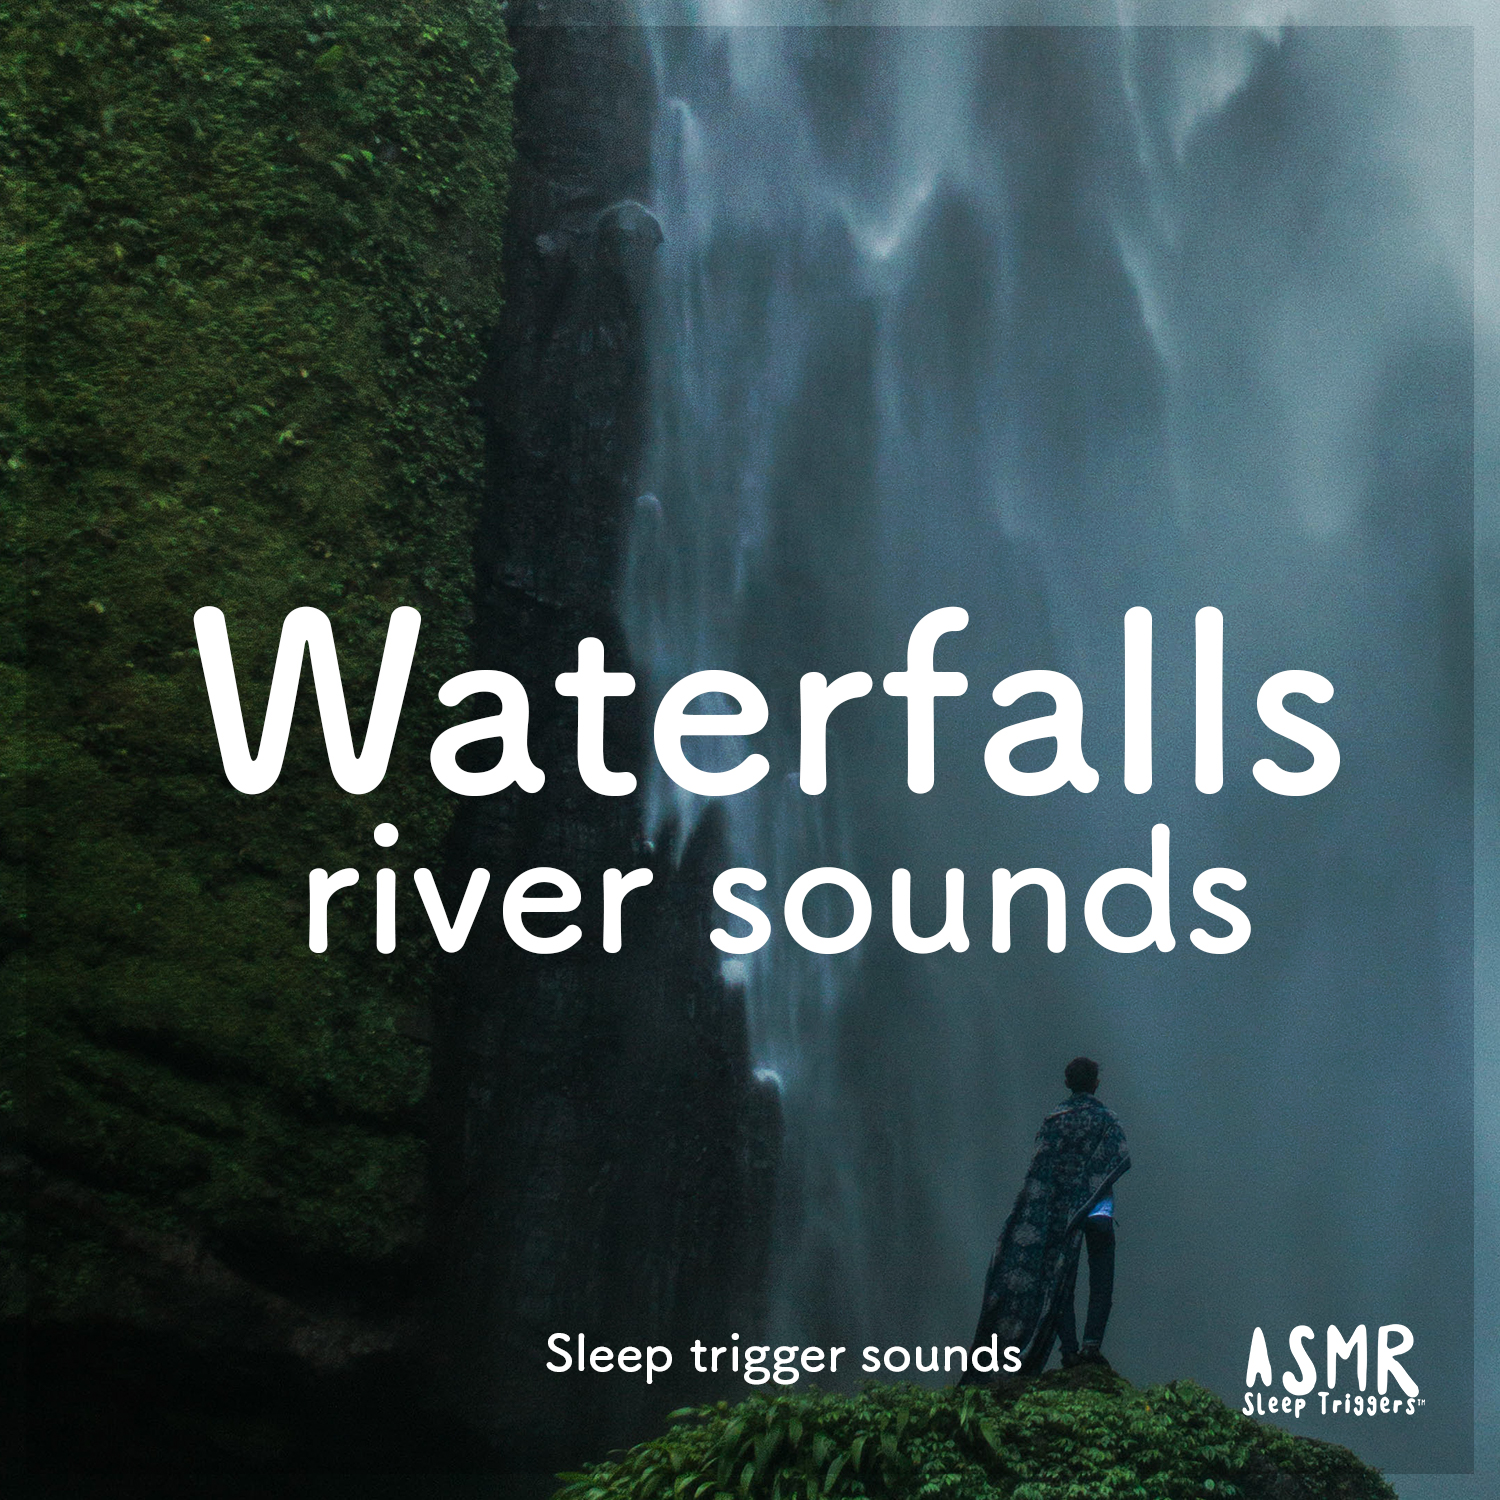 Waterfalls and river sounds 02.jpg